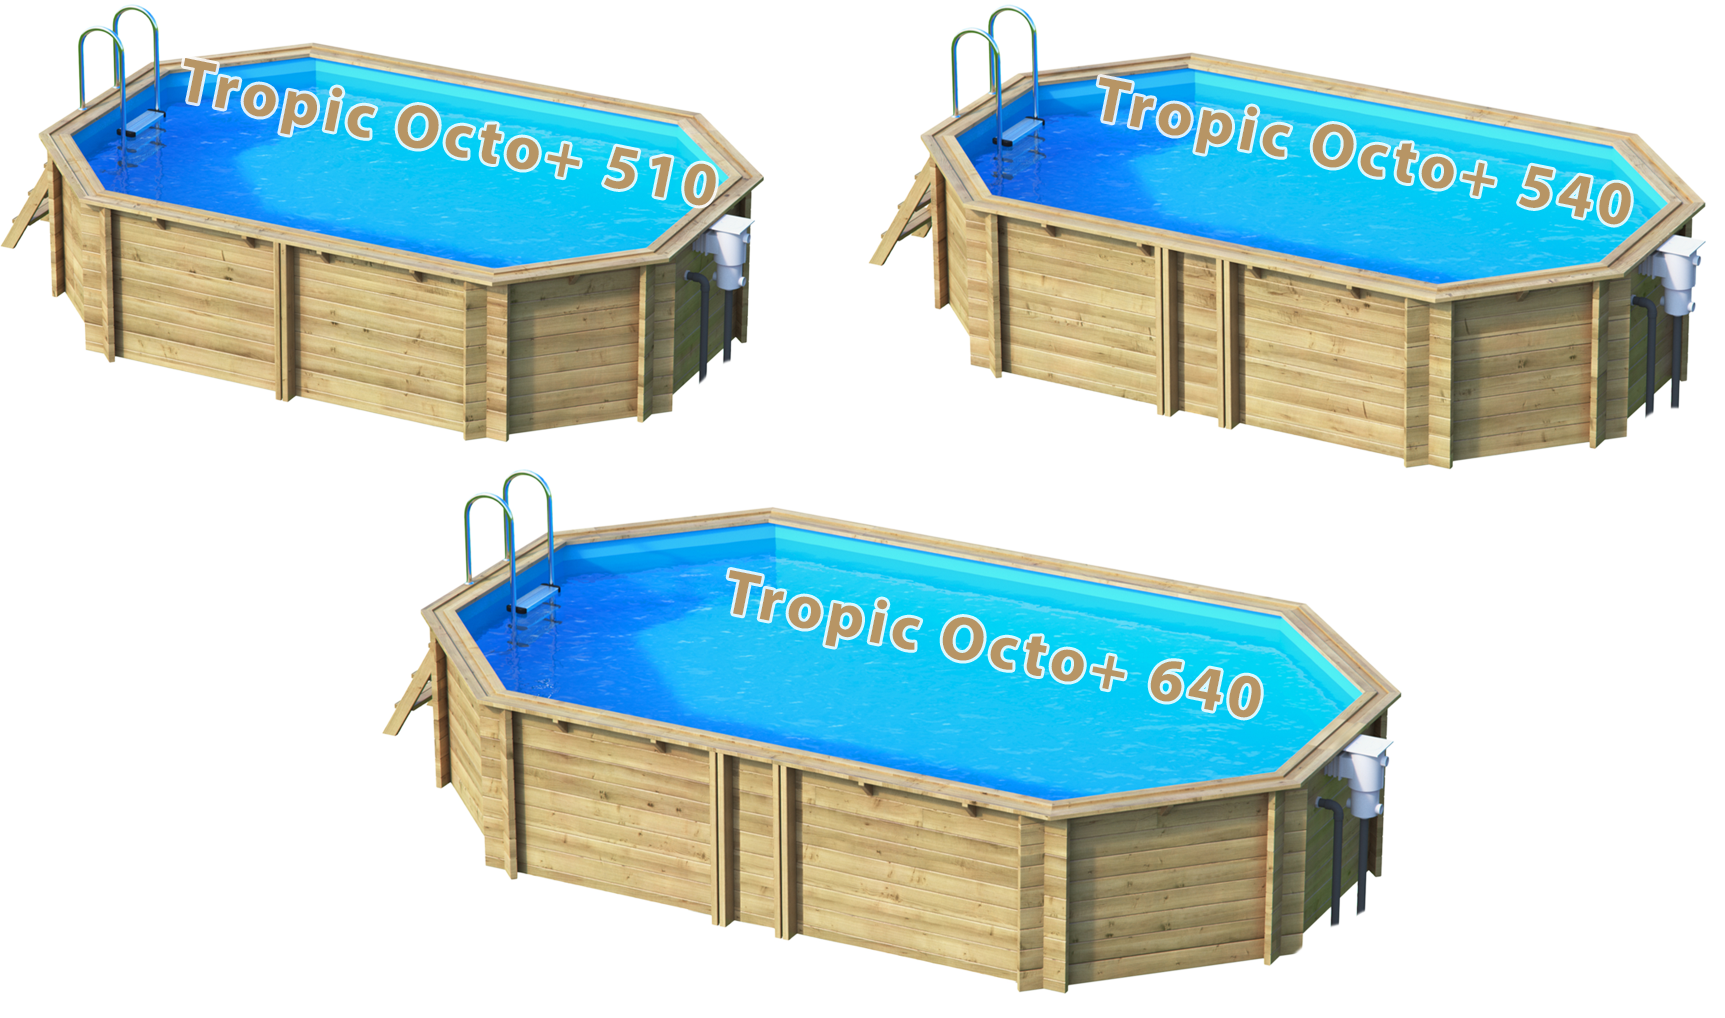 Pool Aus Massivholz Tropic Octo Sunday Pools Onlineshop